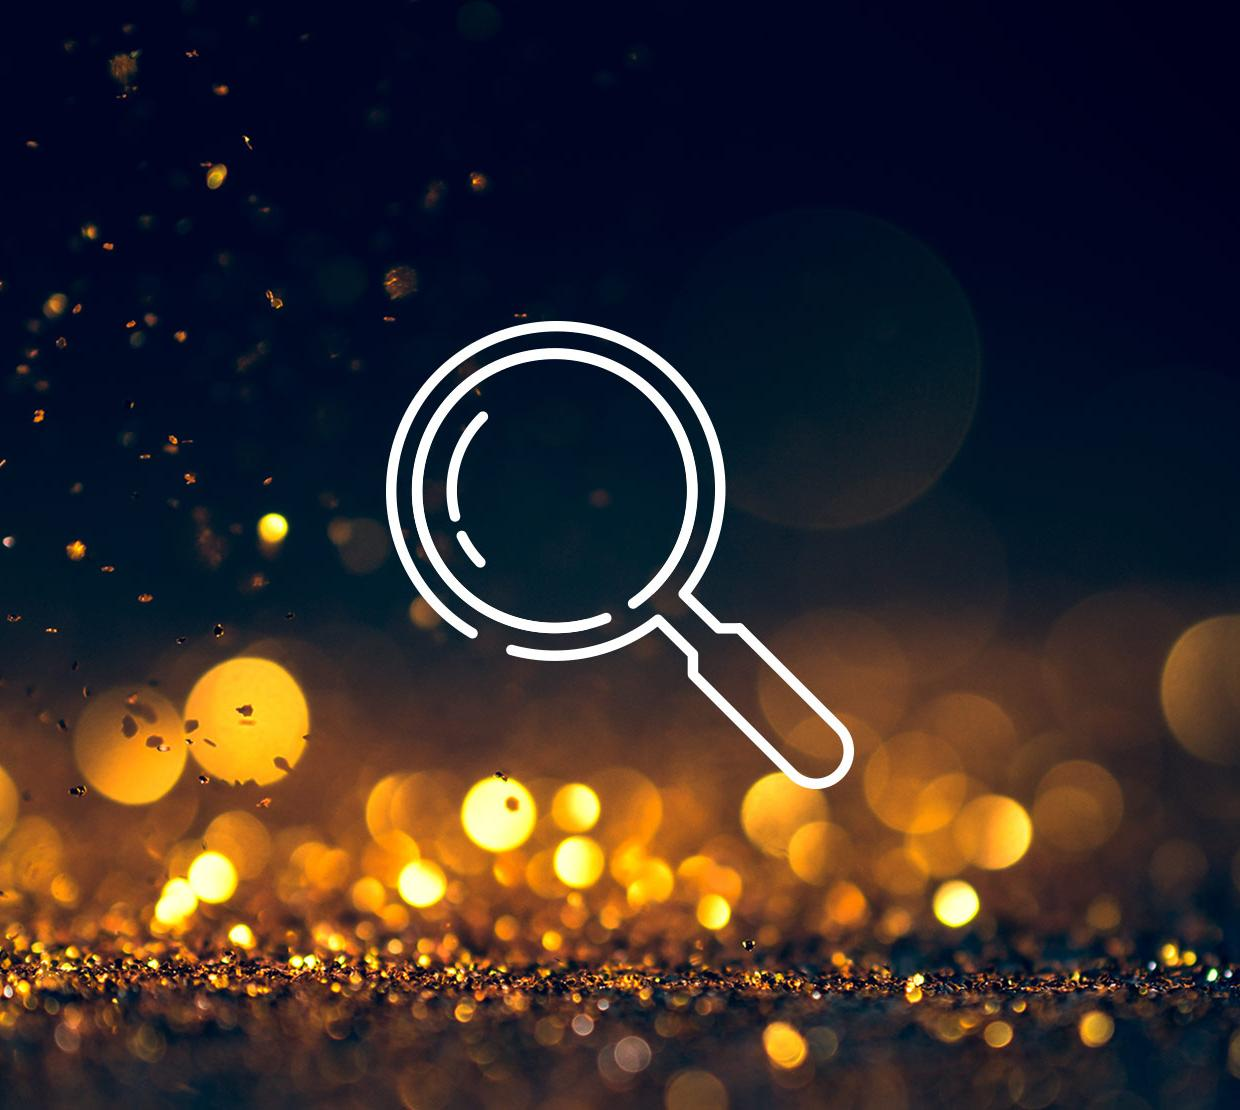 Magnifying glass icon above light texture